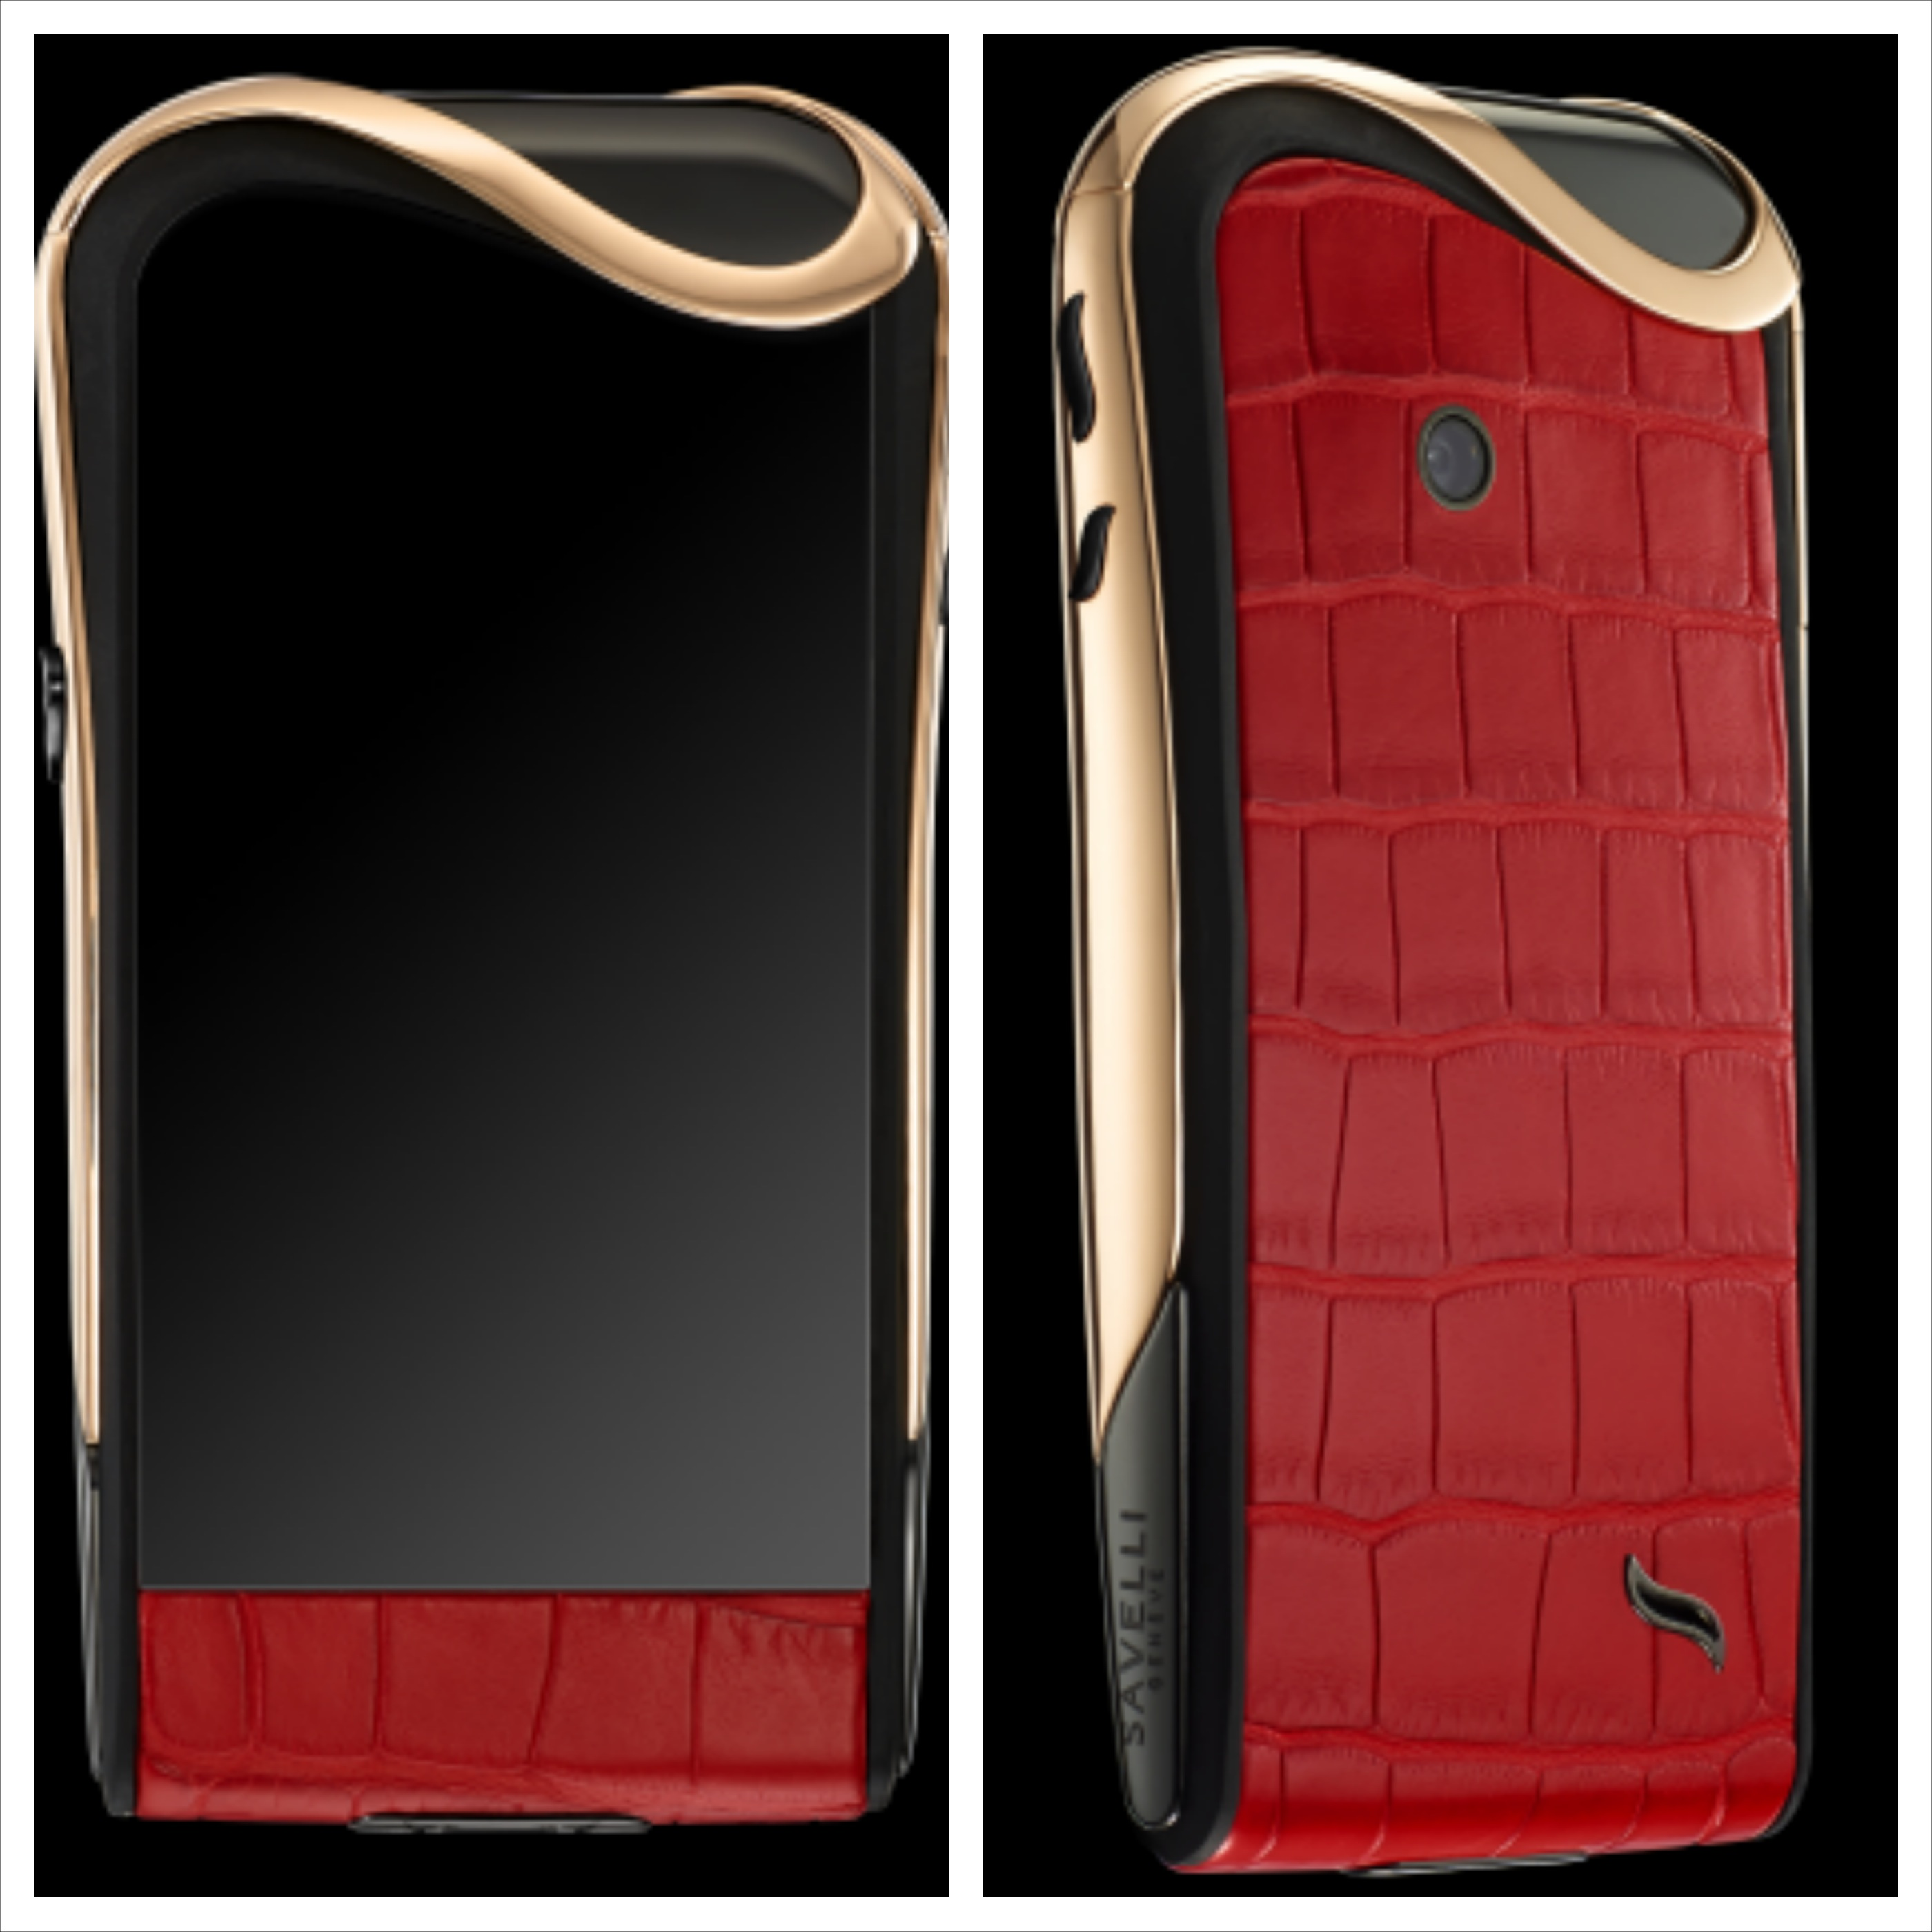 Savelli Smartphone - Most Expensive Cell Phones